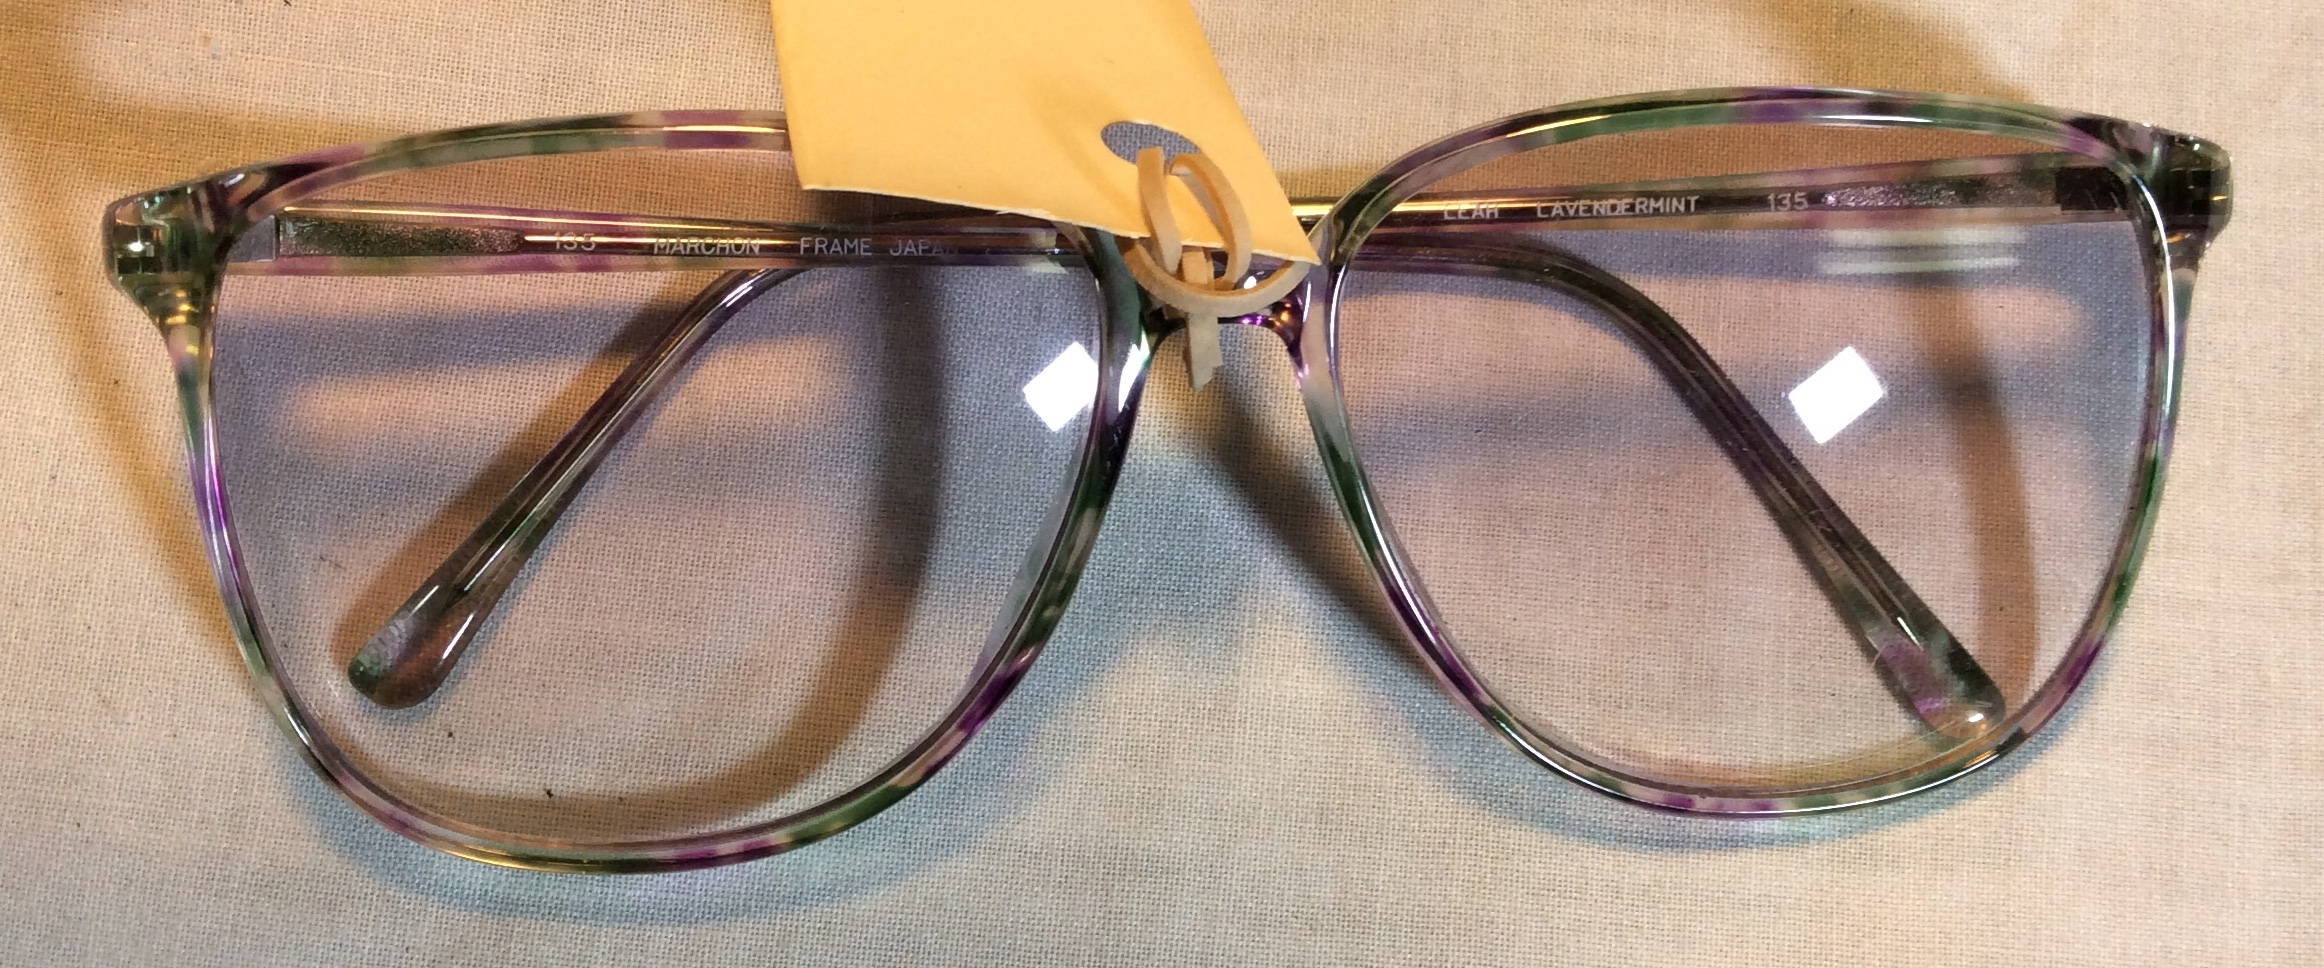 Period eyeglasses with one cracked